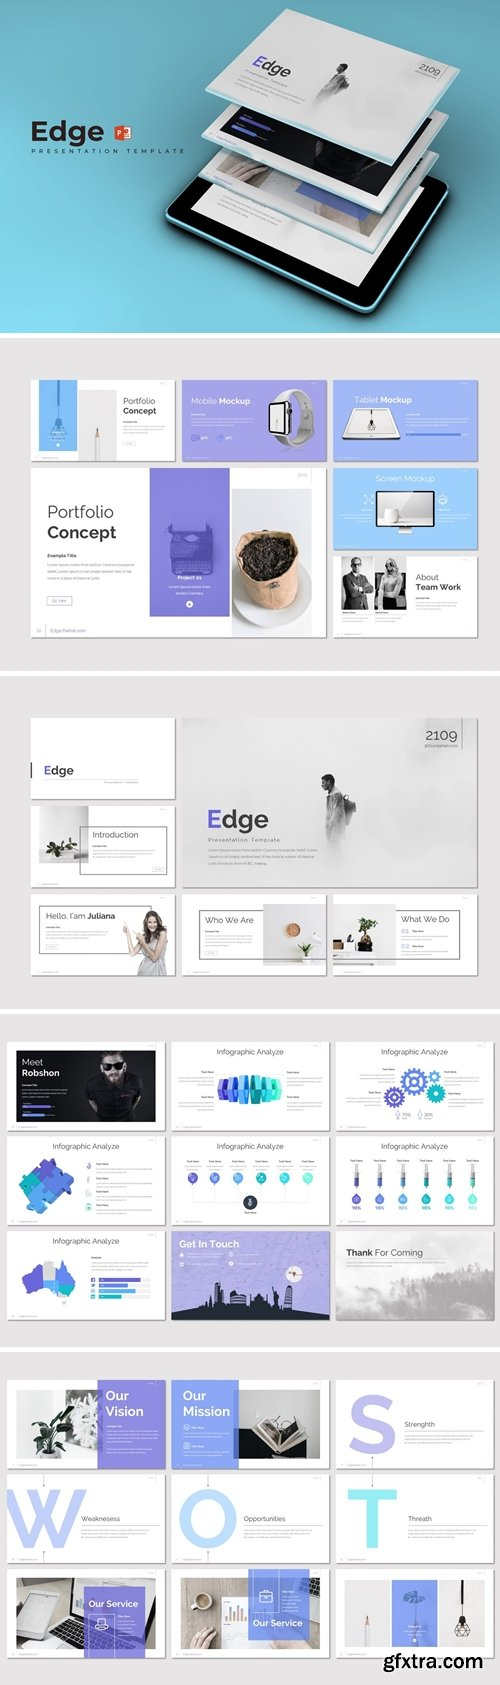 Edge Powerpoint Google Slides and Keynote Templates